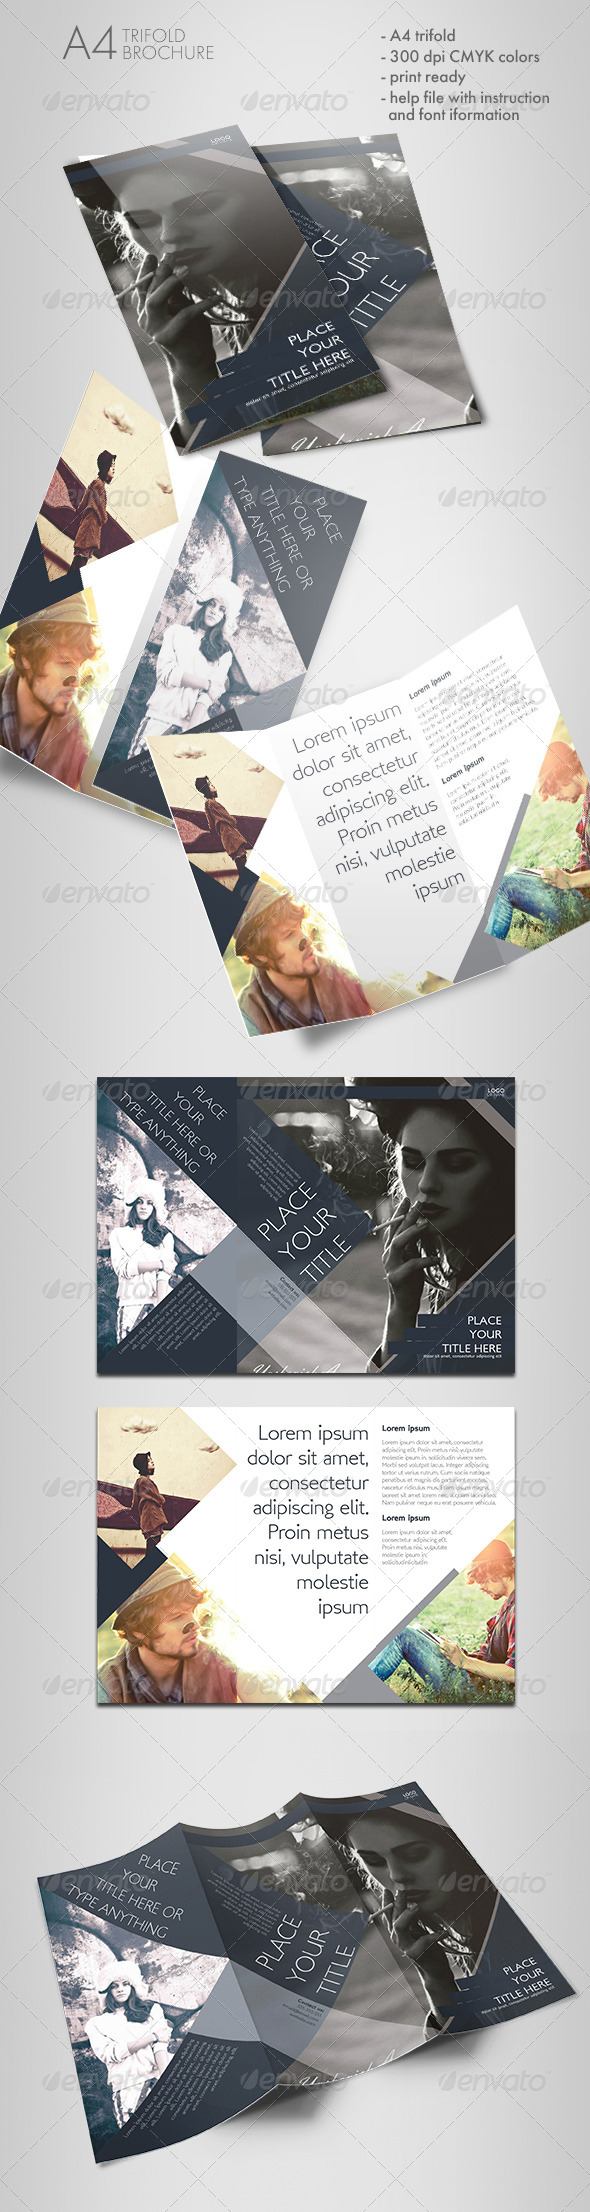 Shaped Trifold Brochure - Informational Brochures